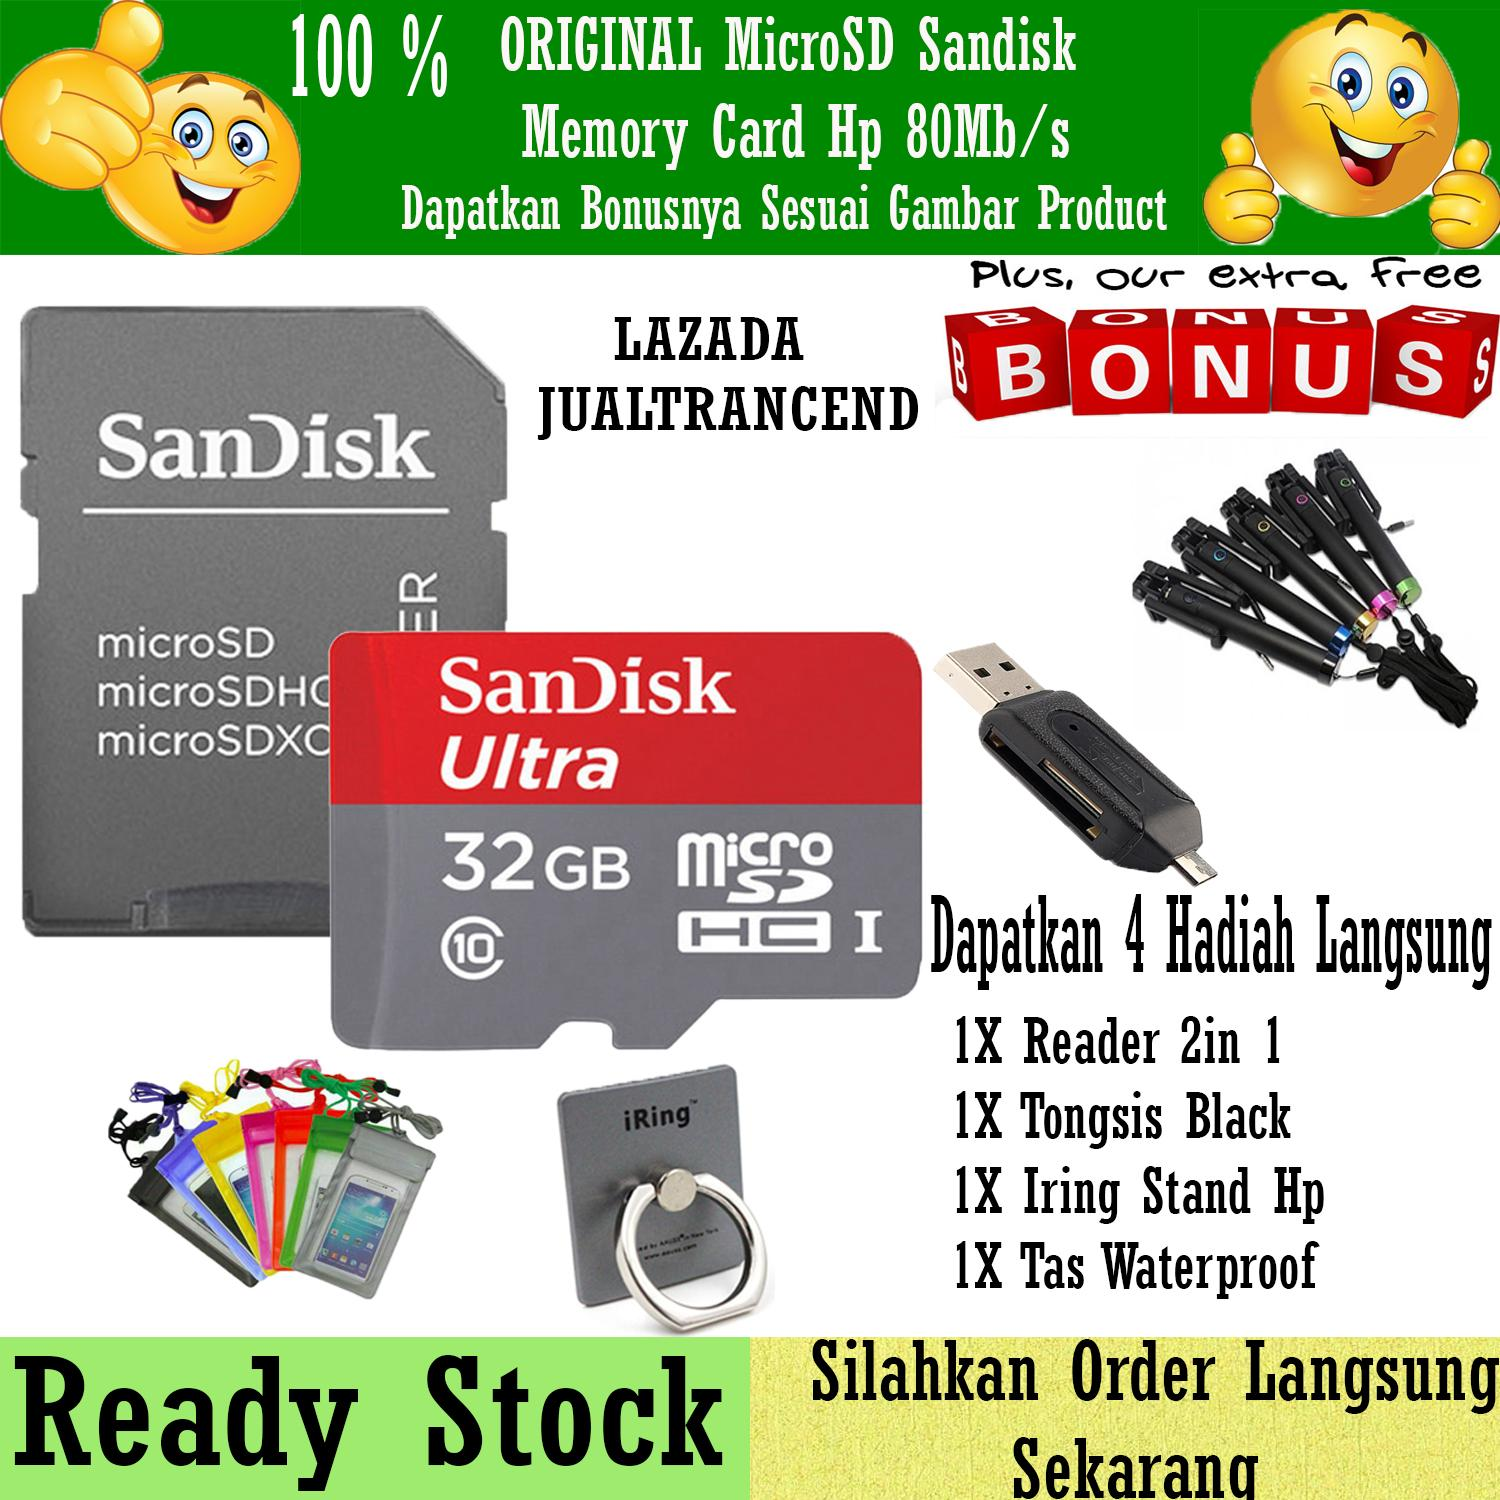 SanDisk Ultra Micro SD 32GB 80MB/s Class 10 UHS + Gratis Reader 2in1 + Iring Stand Hp + Iring Stand Hp + Tongsis Black